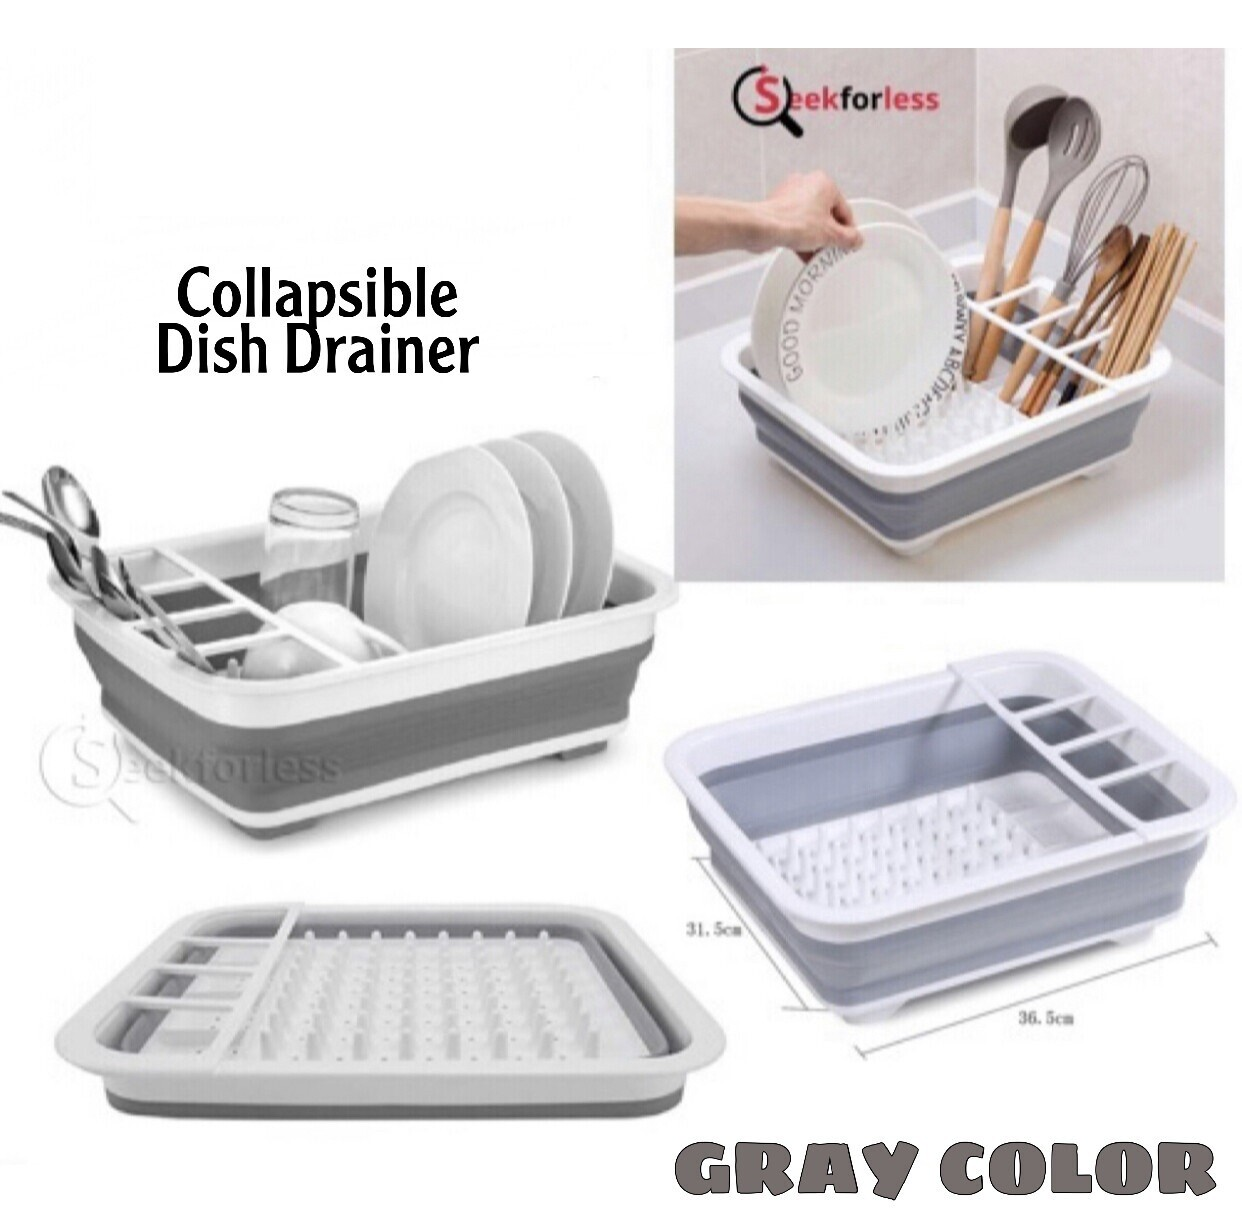 Collapsible Drainer (Gray)